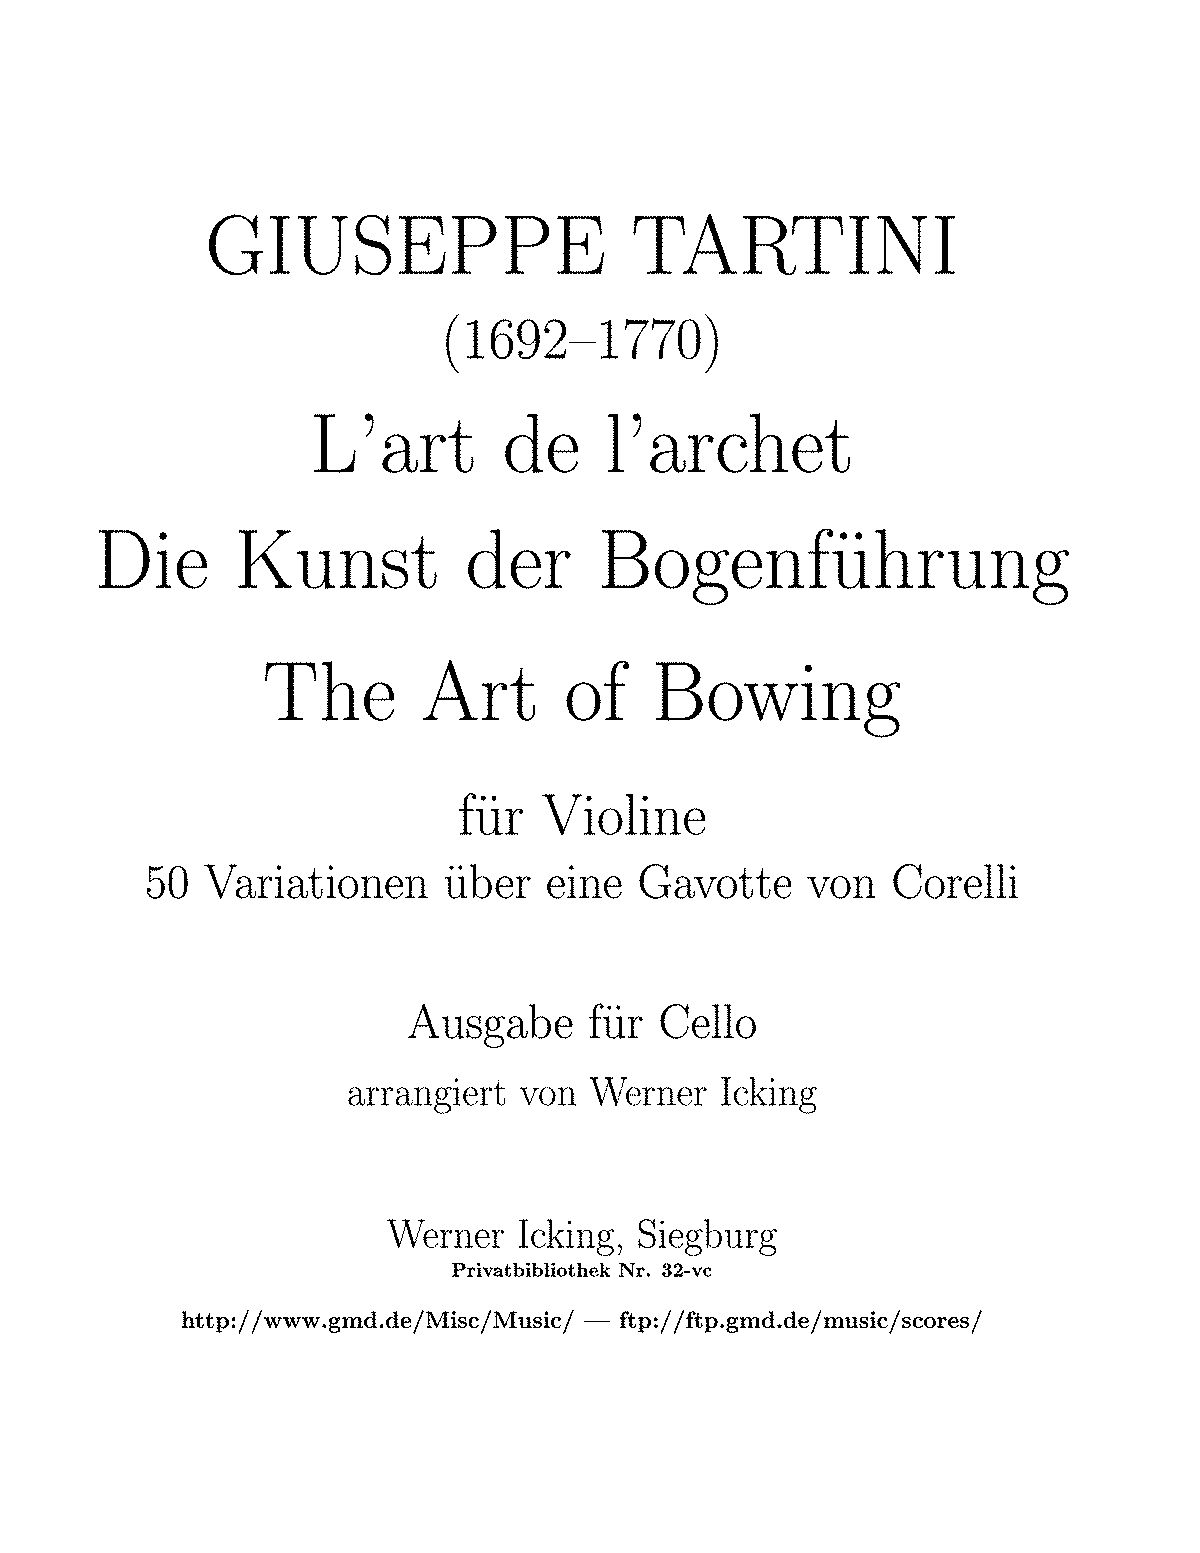 Art Of Bowing For Cello By Giuseppe Tartini.pdf